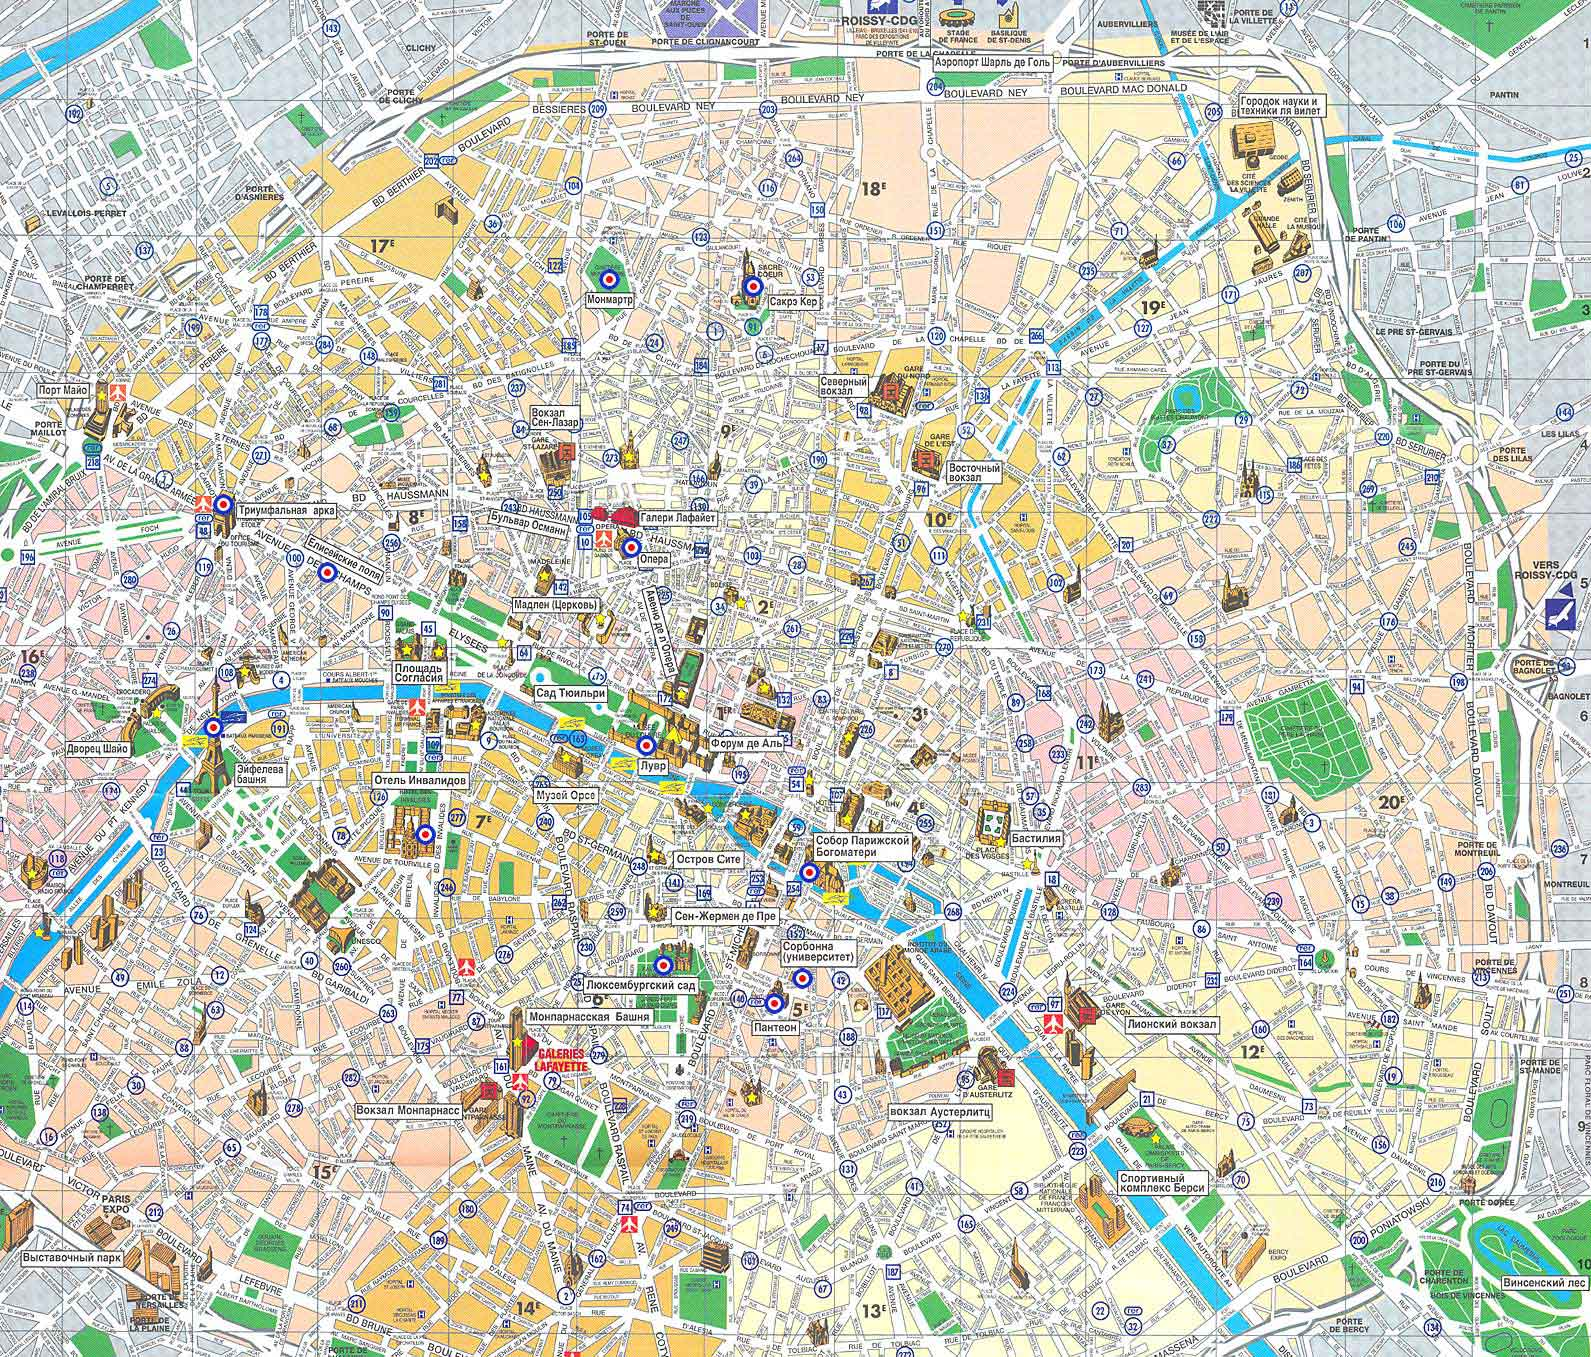 About this map you can open download and print this detailed paris map